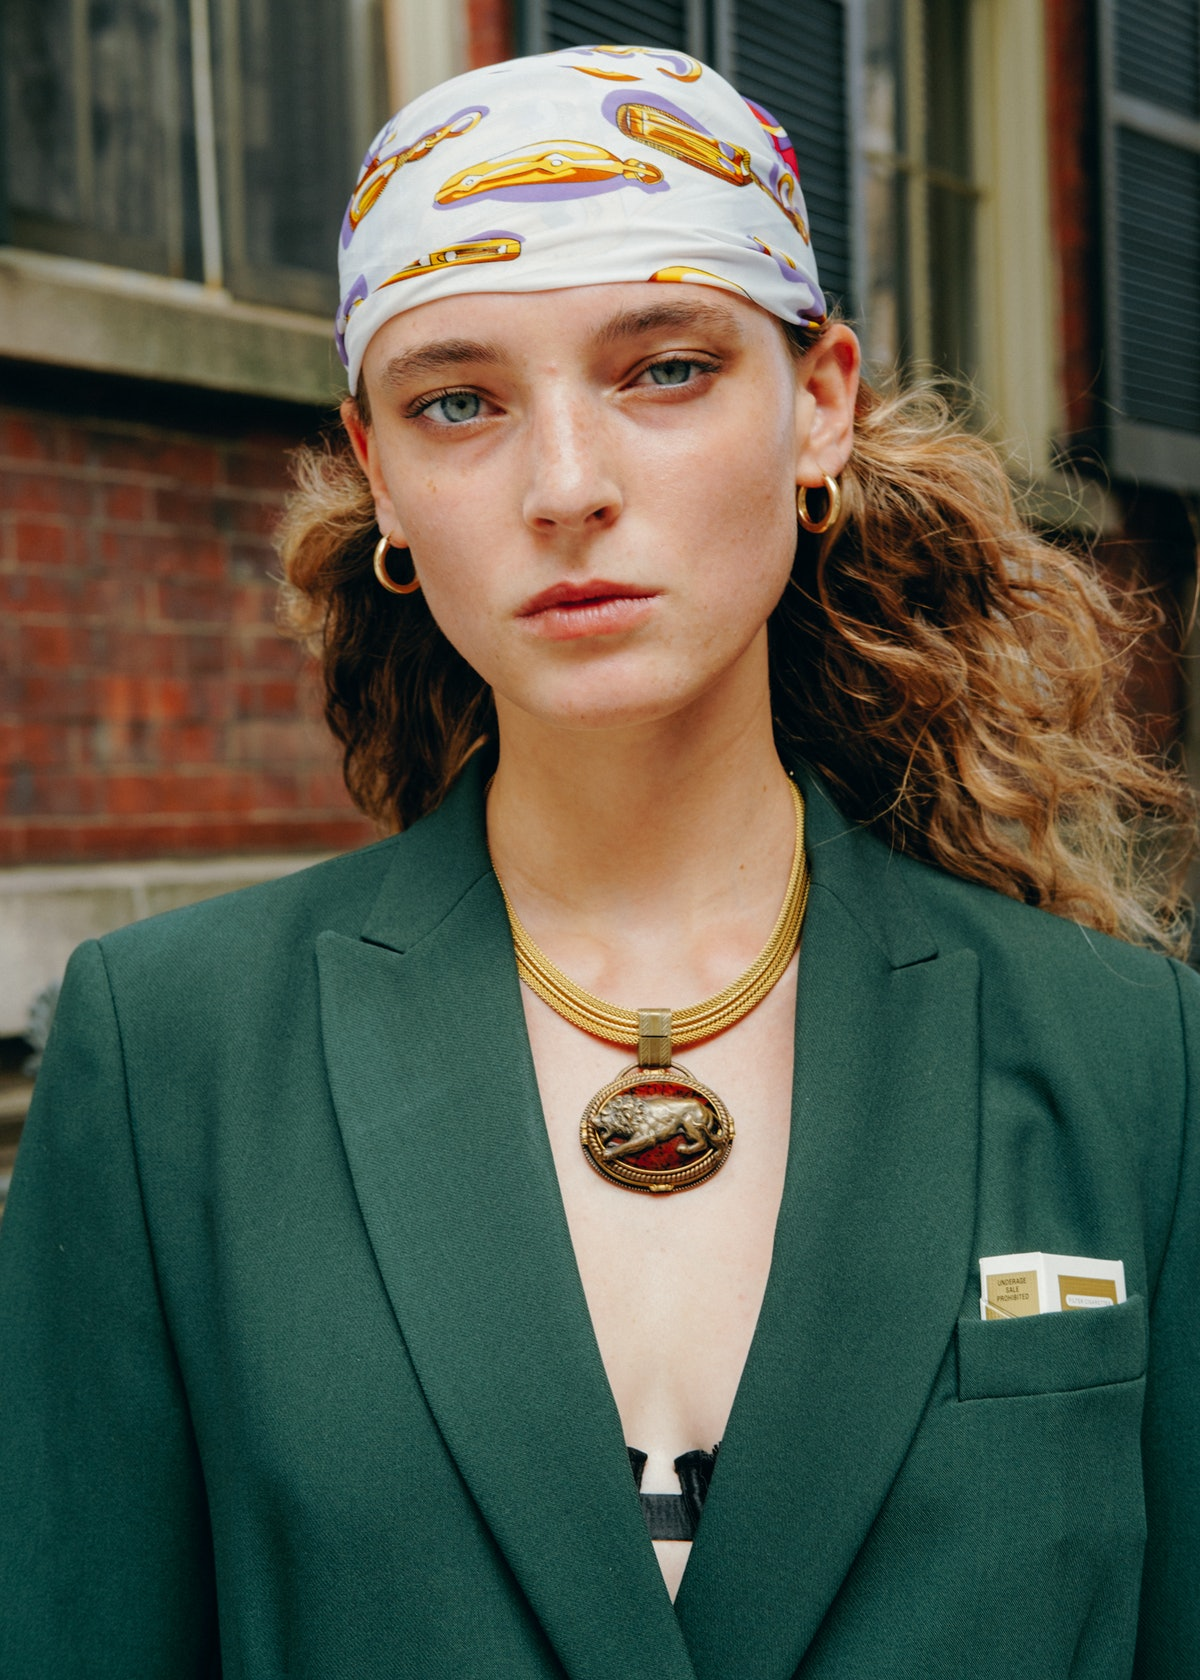 Portrait of young girl on the street.  Wear a green blazer.